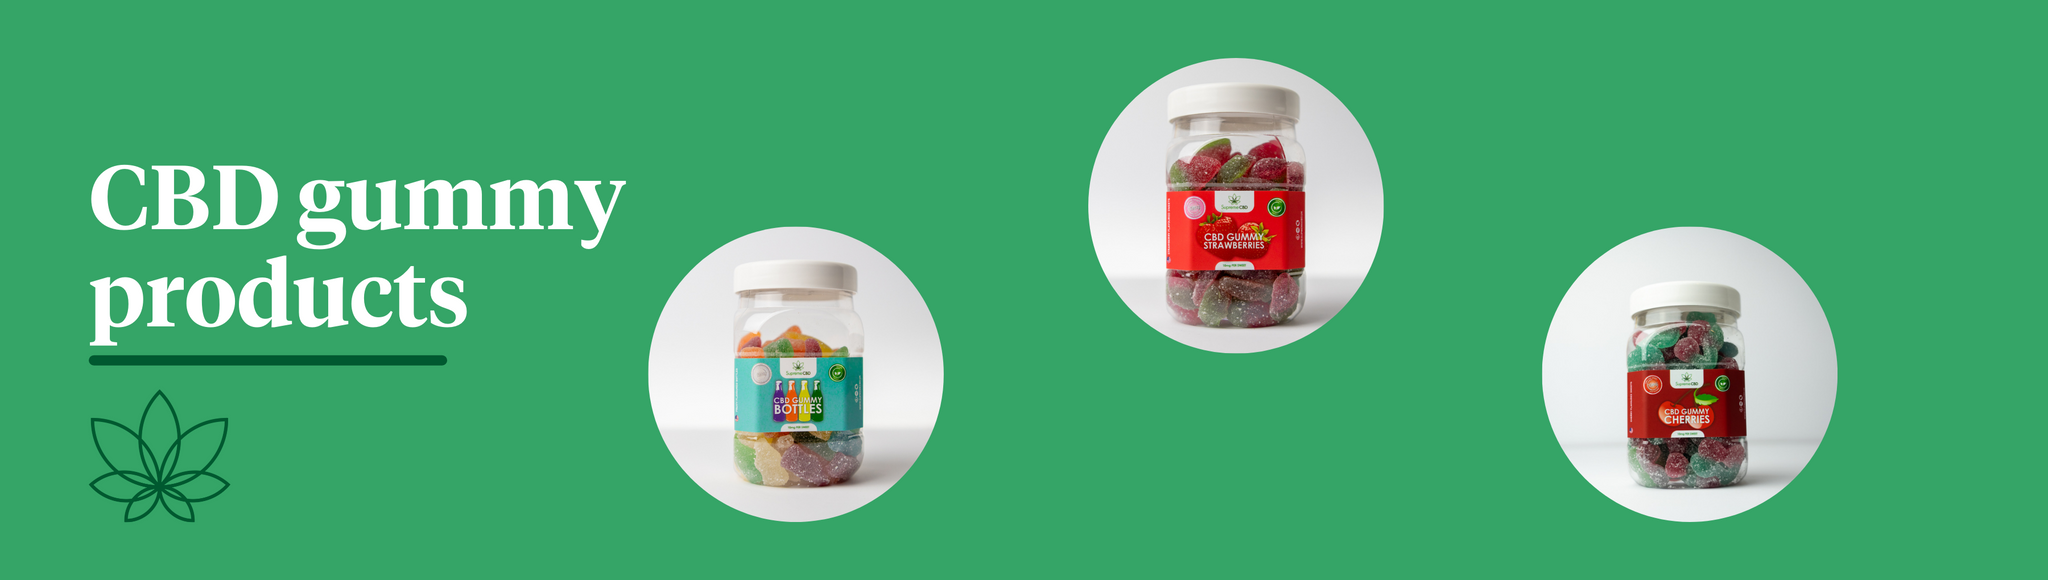 A green background with three images of Supreme CBD products, CBD bottles, CBD strawberries and CBD cherries.